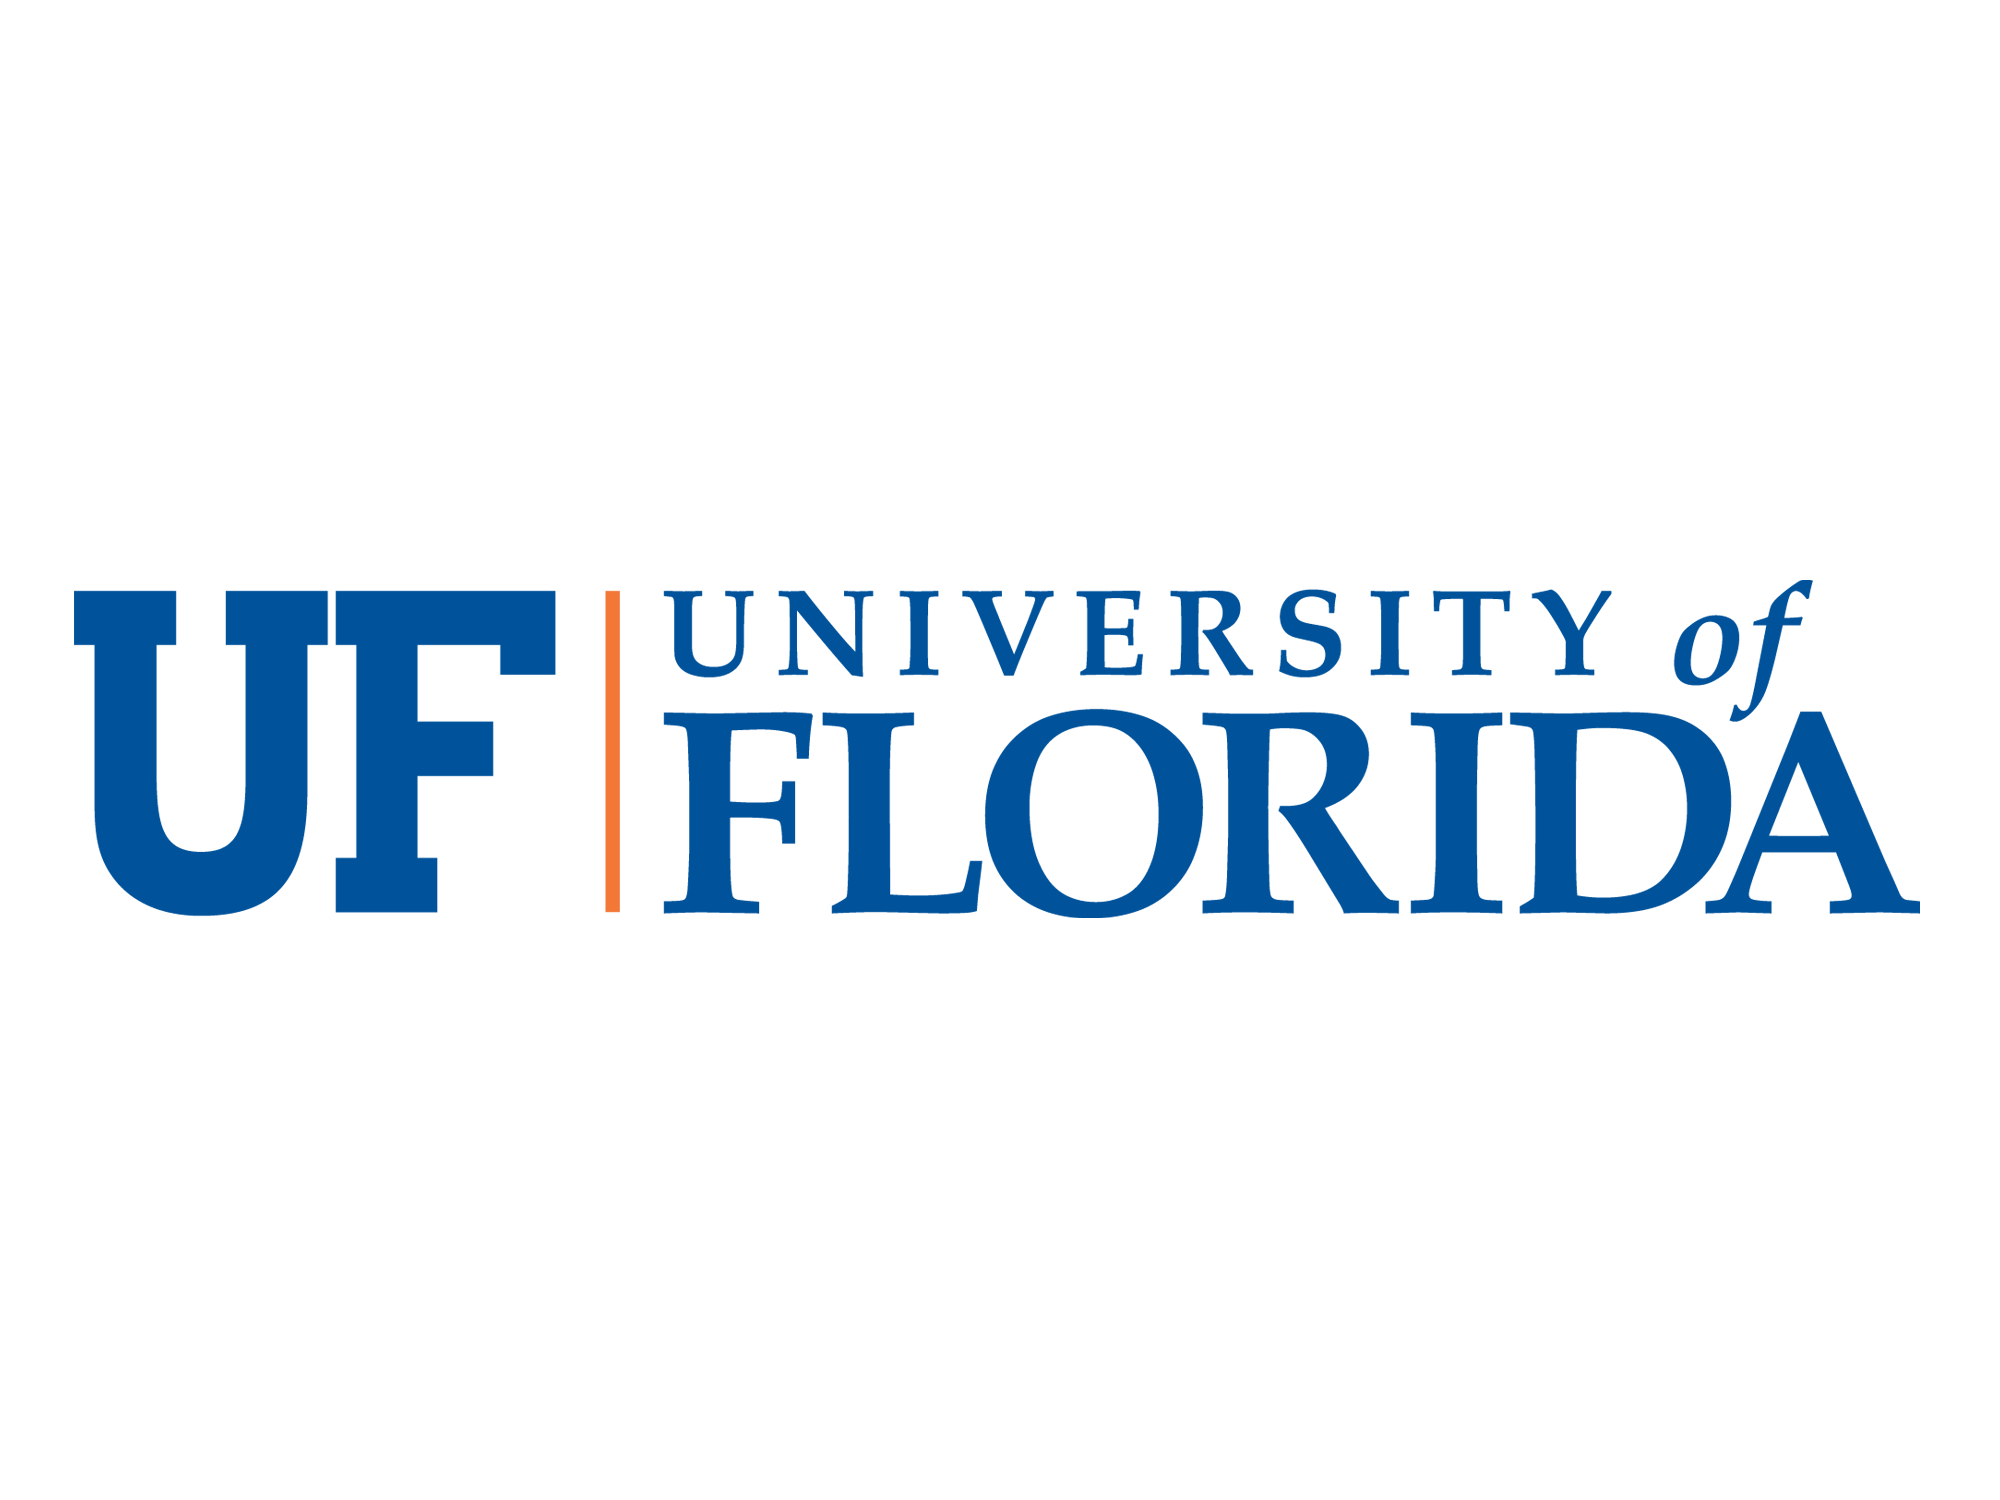 (University of Florida) College of Journalism and Communication